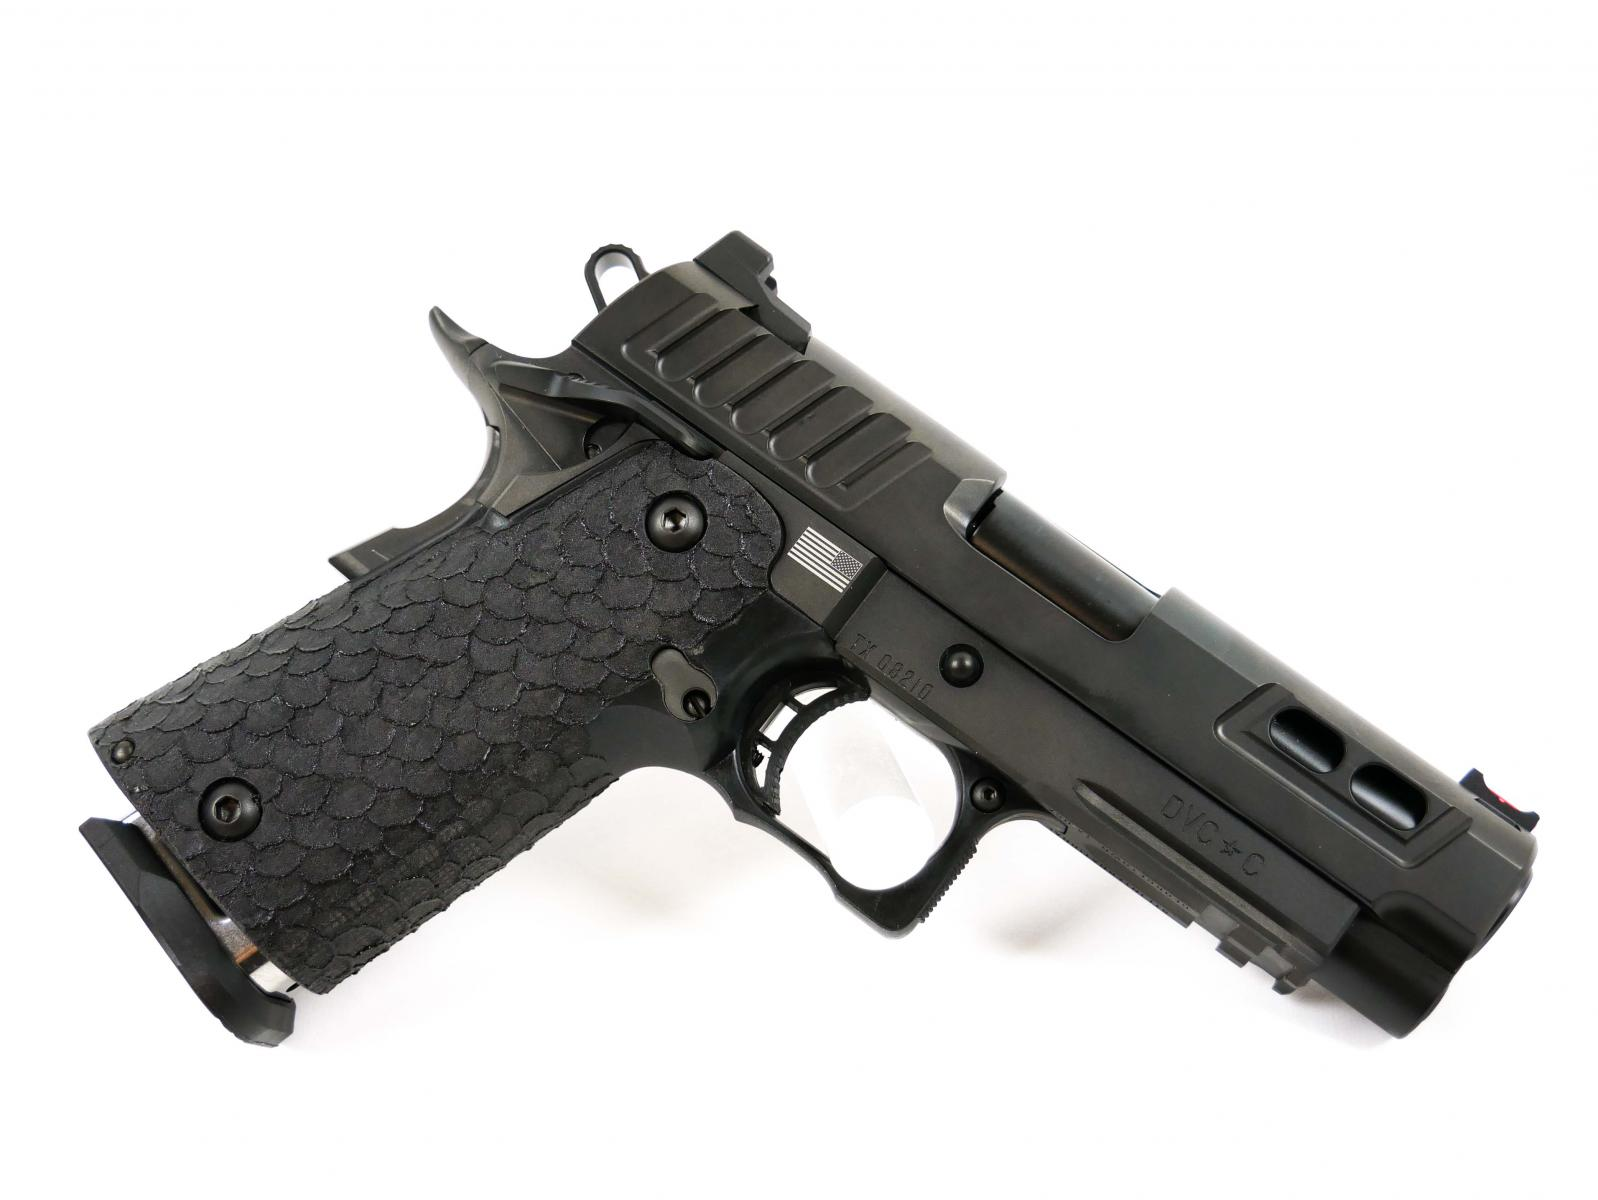 "STI DVC-C | 9x19mm, 4.15"" Bull Barrel, Dawson Sights, Gen II 2011® Grip, 1 126mm Mag, 2 140mm Mags"